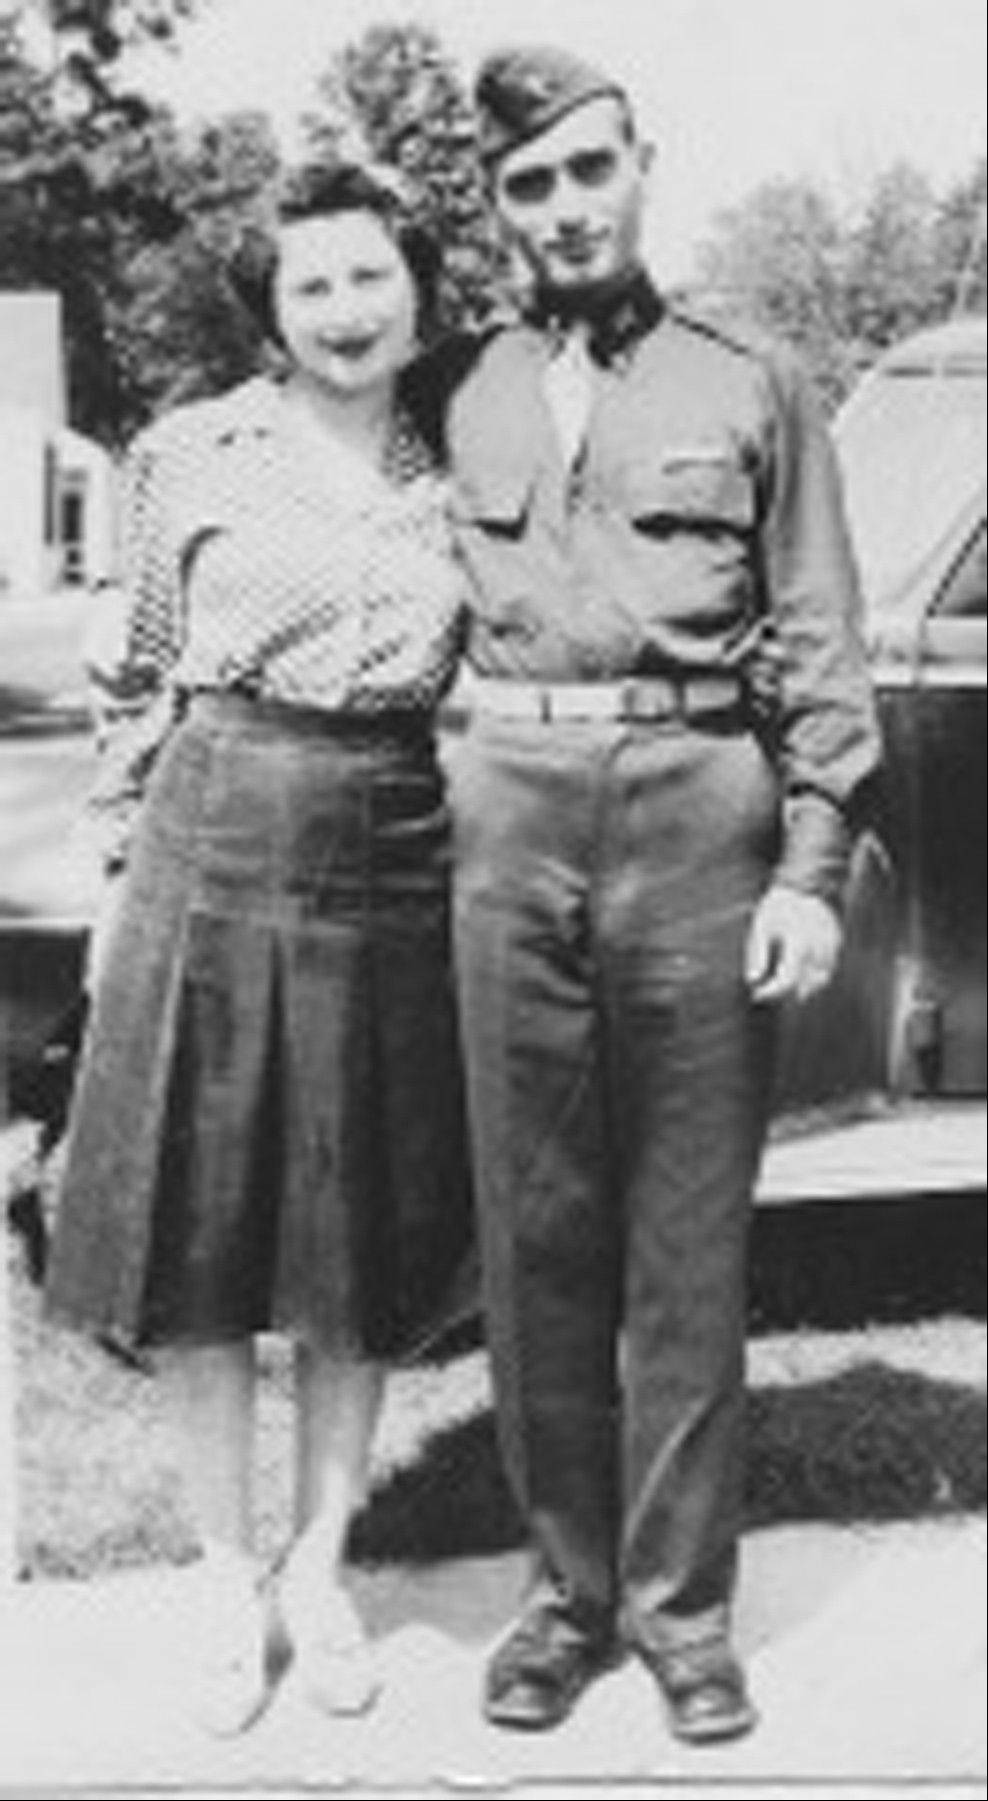 This undated image provided by Hyla Merin shows 2nd Lt. Hyman Markel with his bride, Celia Markel. Markel was a rabbi's son, brilliant at mathematics, the brave winner of a Purple Heart who died in 1945. Markel was killed on May 3, 1945, in Italy's Po Valley while fighting German troops as an officer with the 88th Division of the 351st Infantry Regiment.